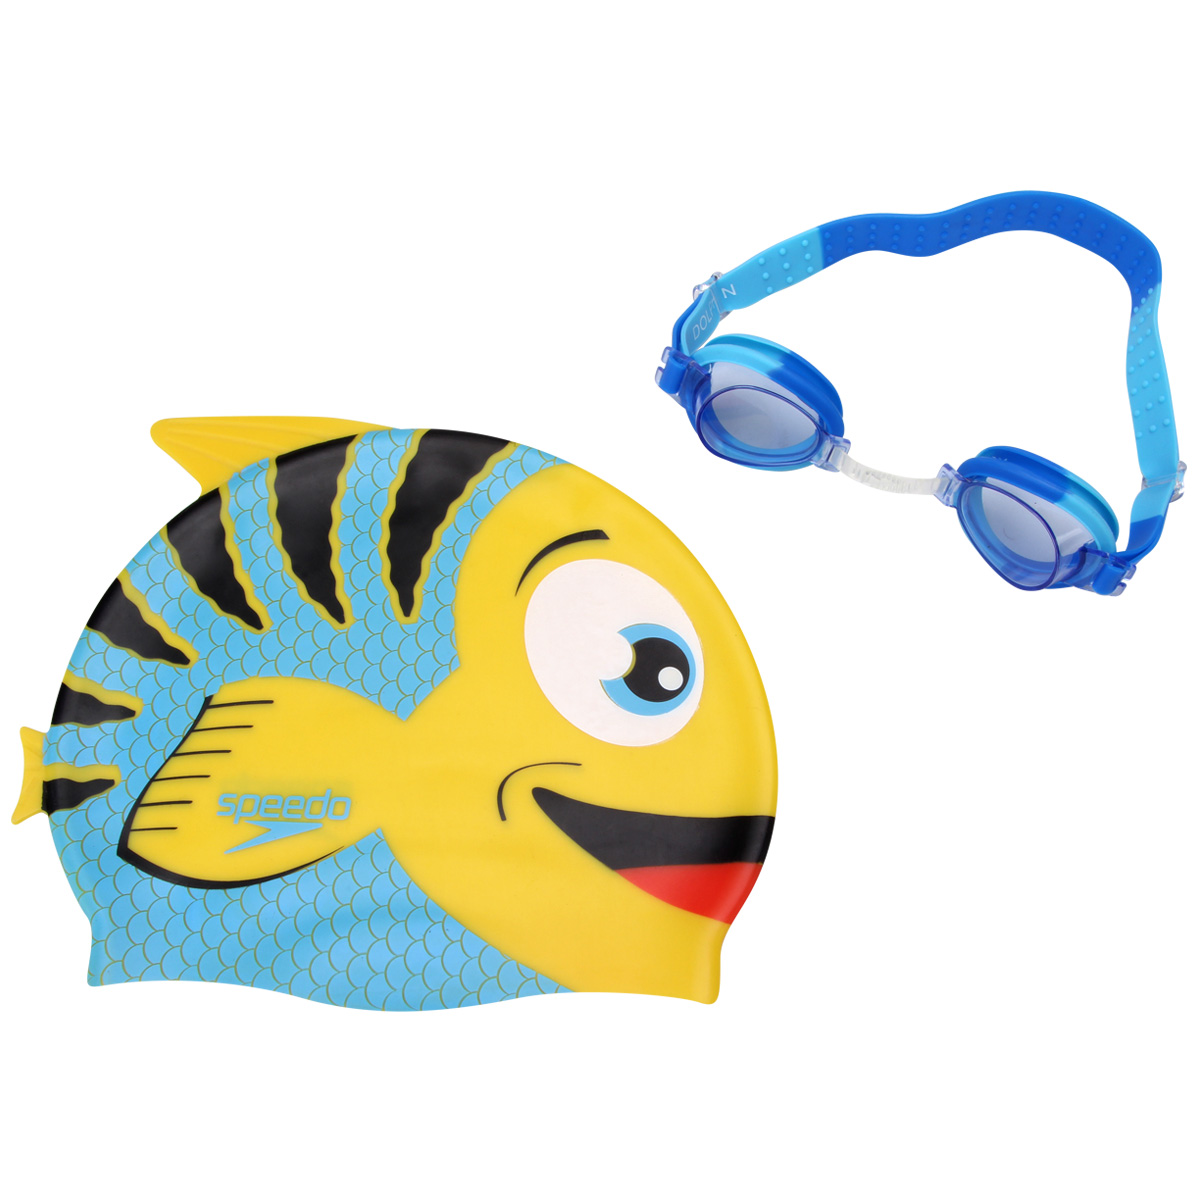 Kit Infantil Óculos + Touca Fish Combo Azul - Speedo